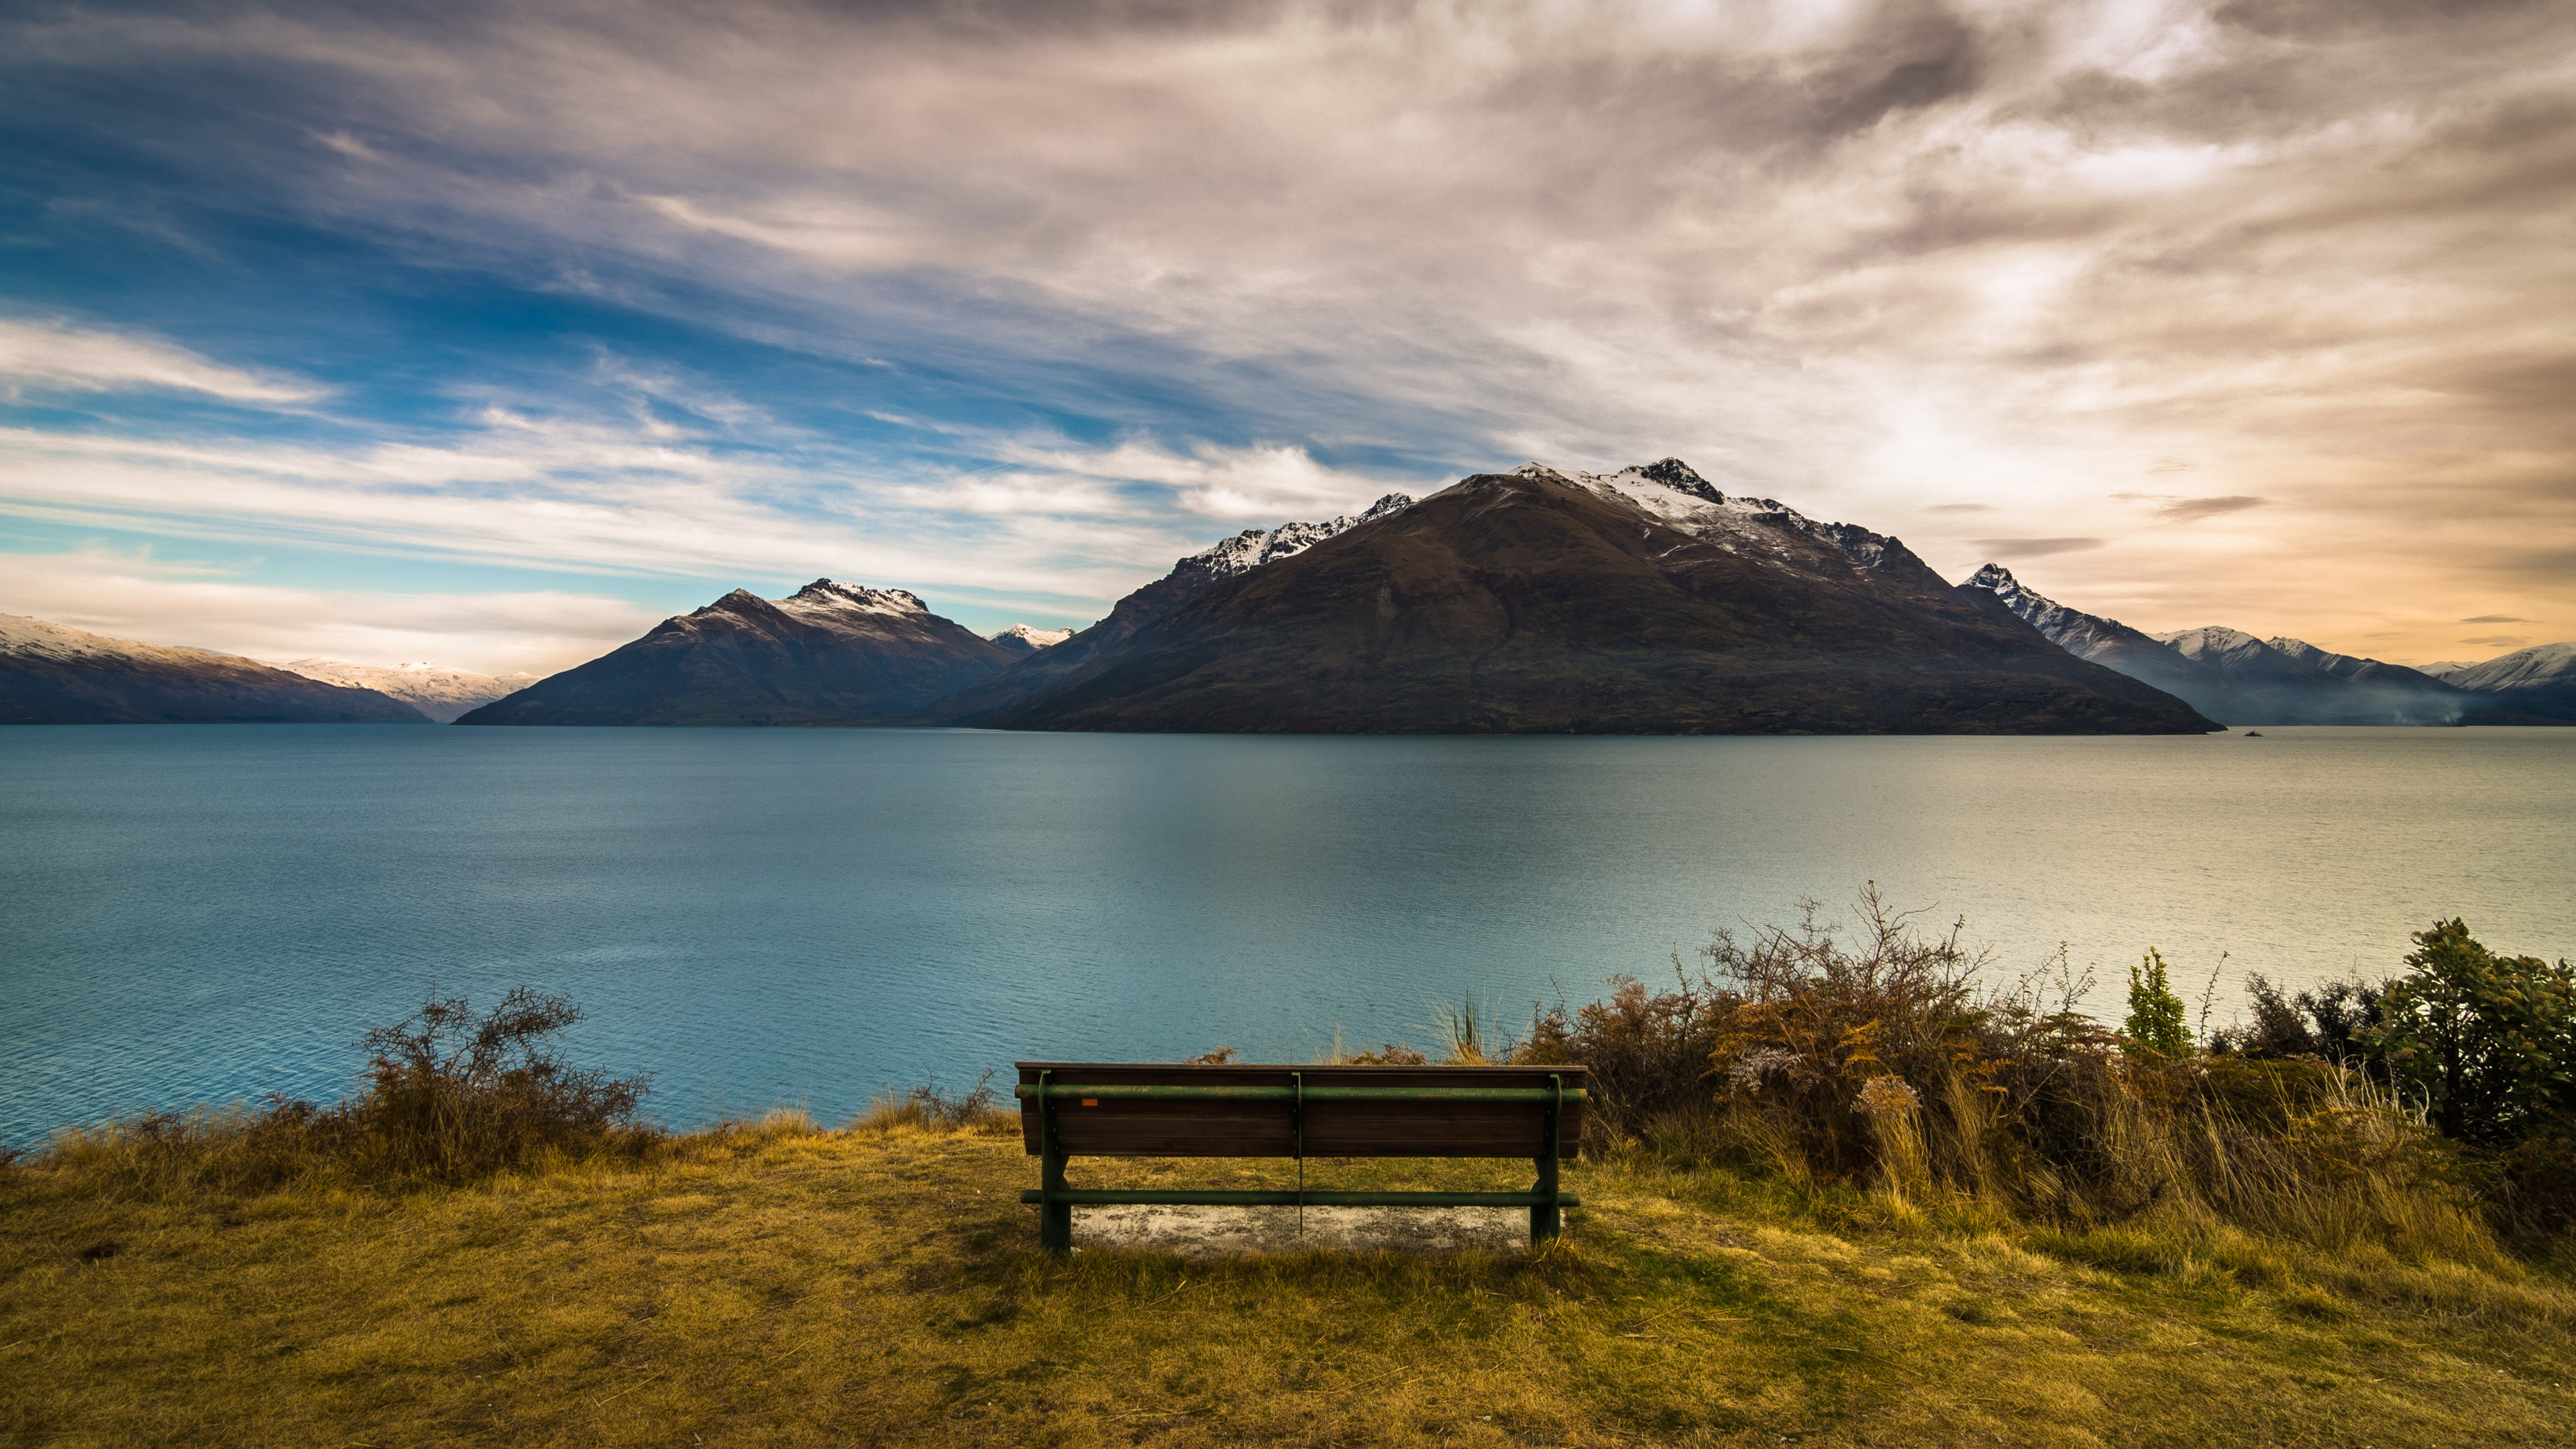 Wallpaper New Zealand Queenstown Mountains Lake Bench Dusk 3840x2160 Uhd 4k Picture Image